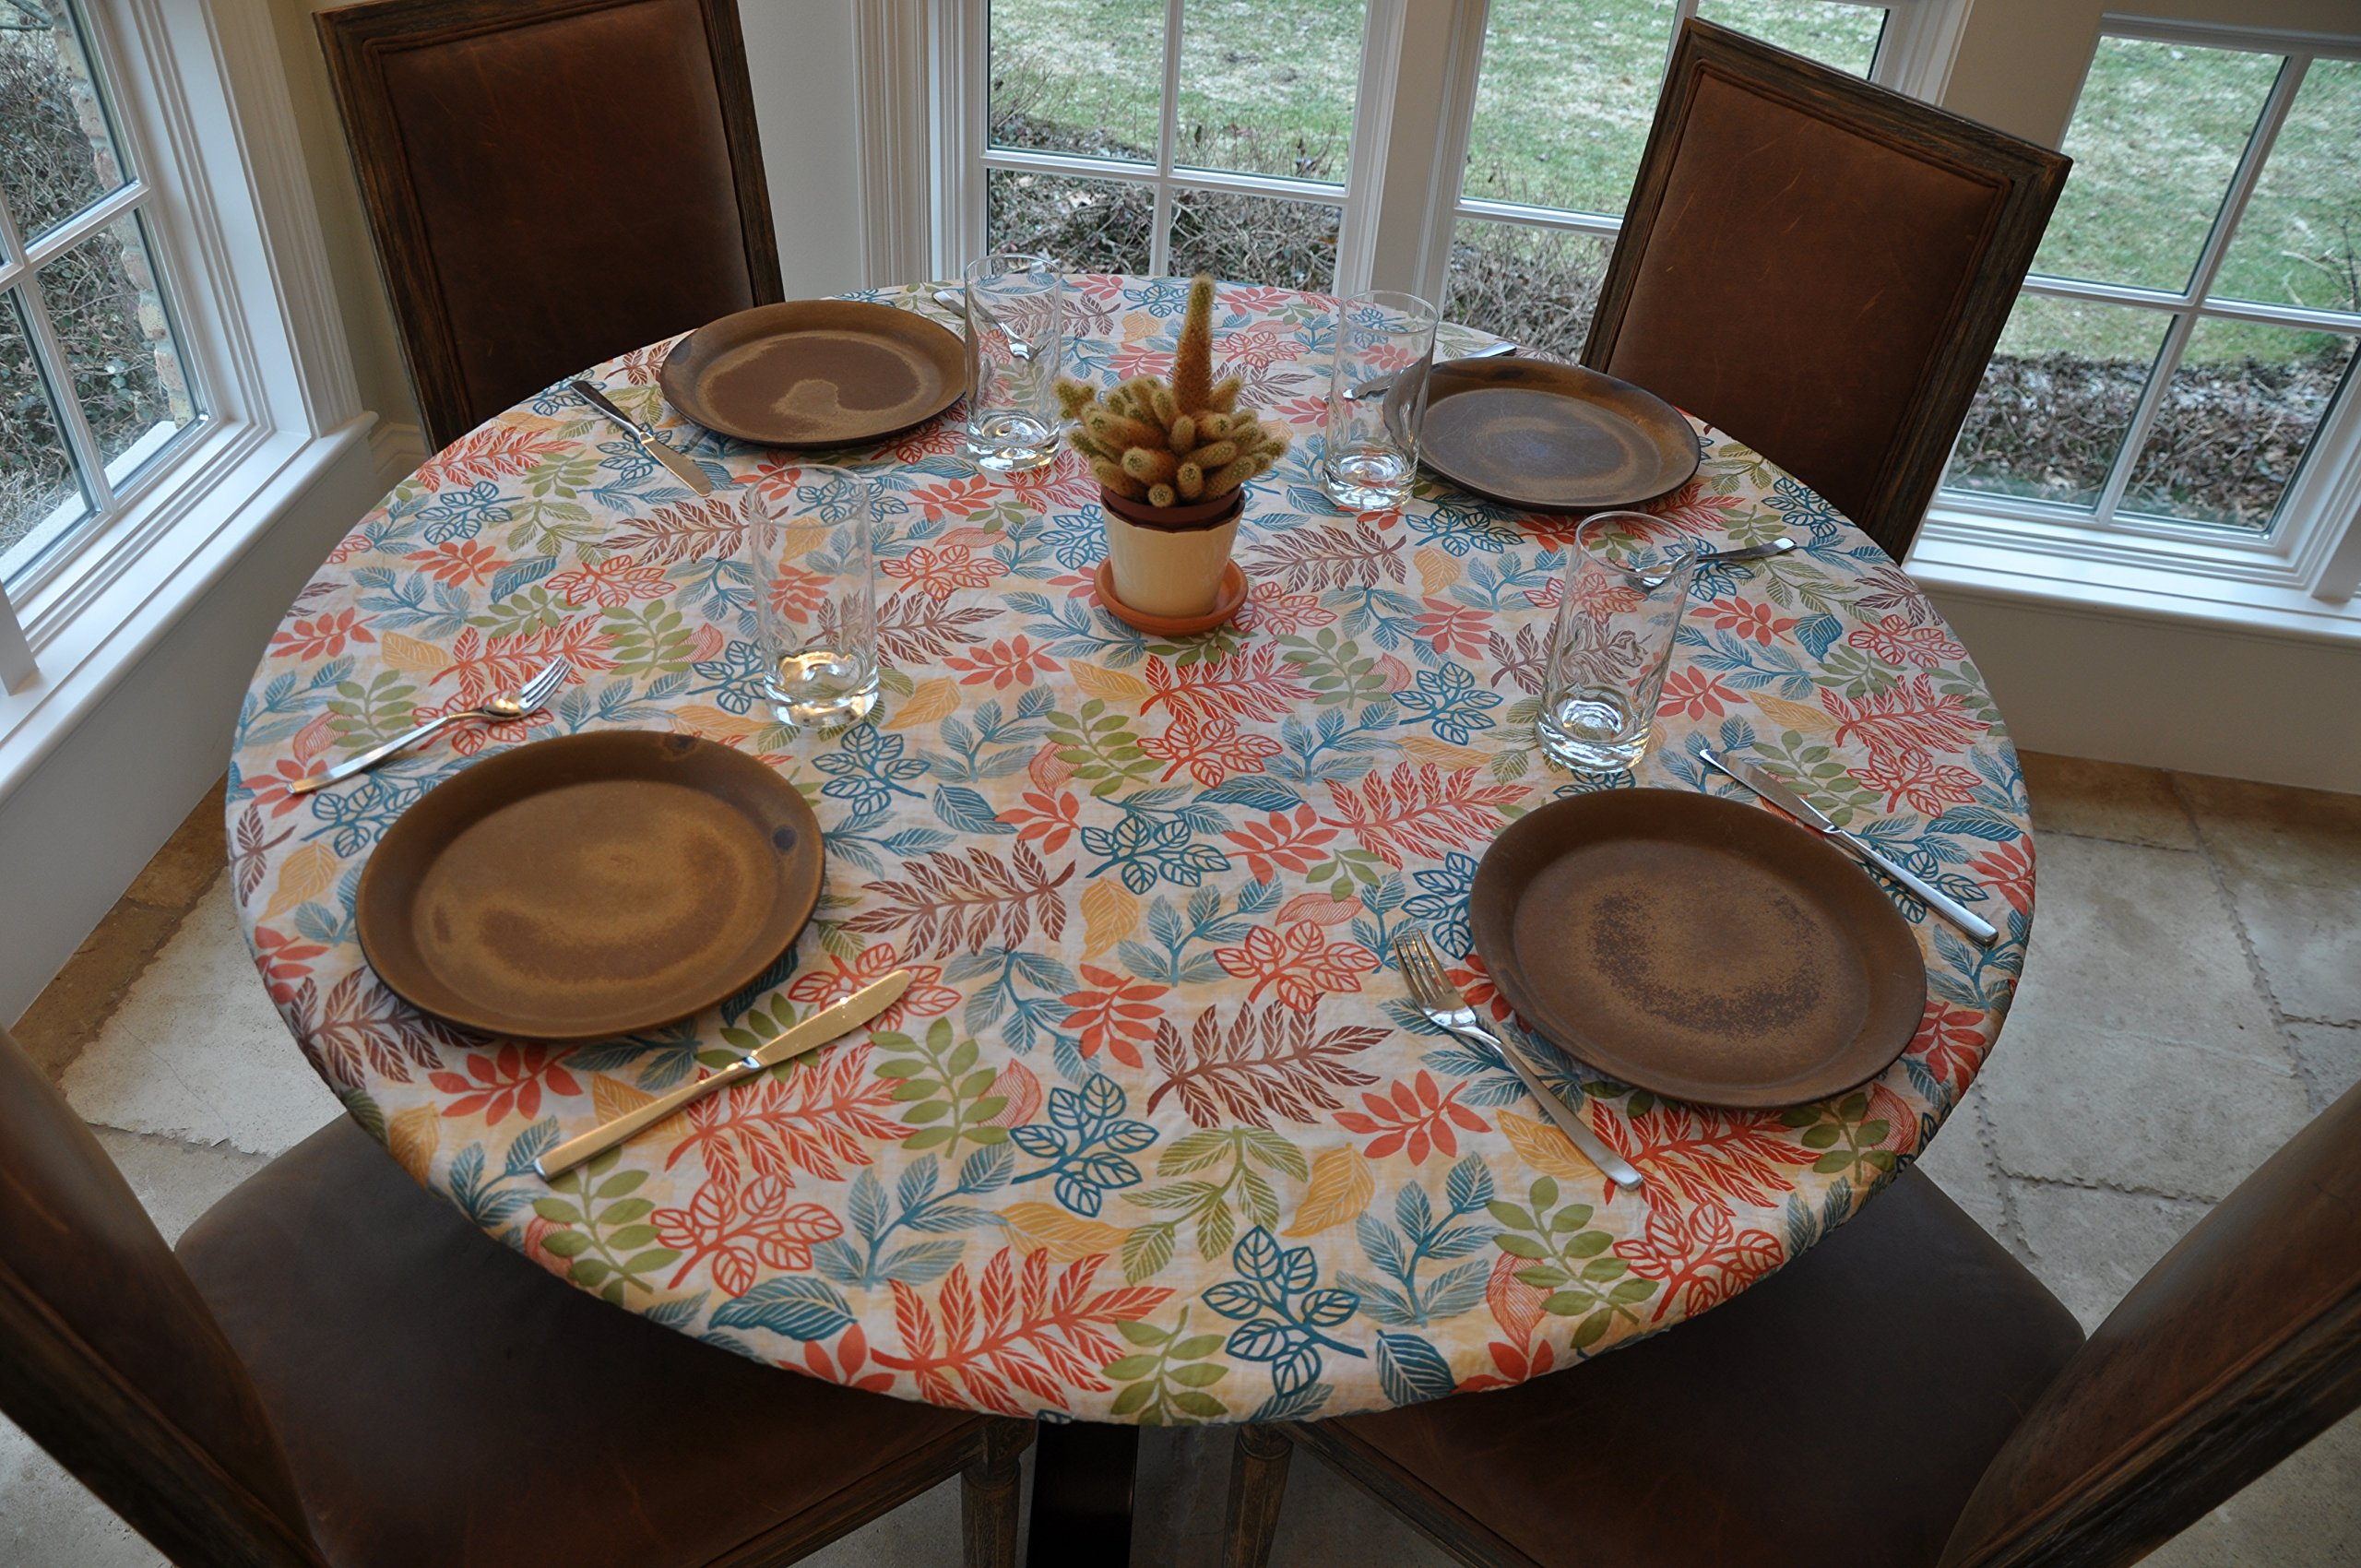 "Elastic Edged Flannel Backed Vinyl Fitted Table Cover - BOTANICAL Pattern - Small Round - Fits tables up to 44"" Diameter"